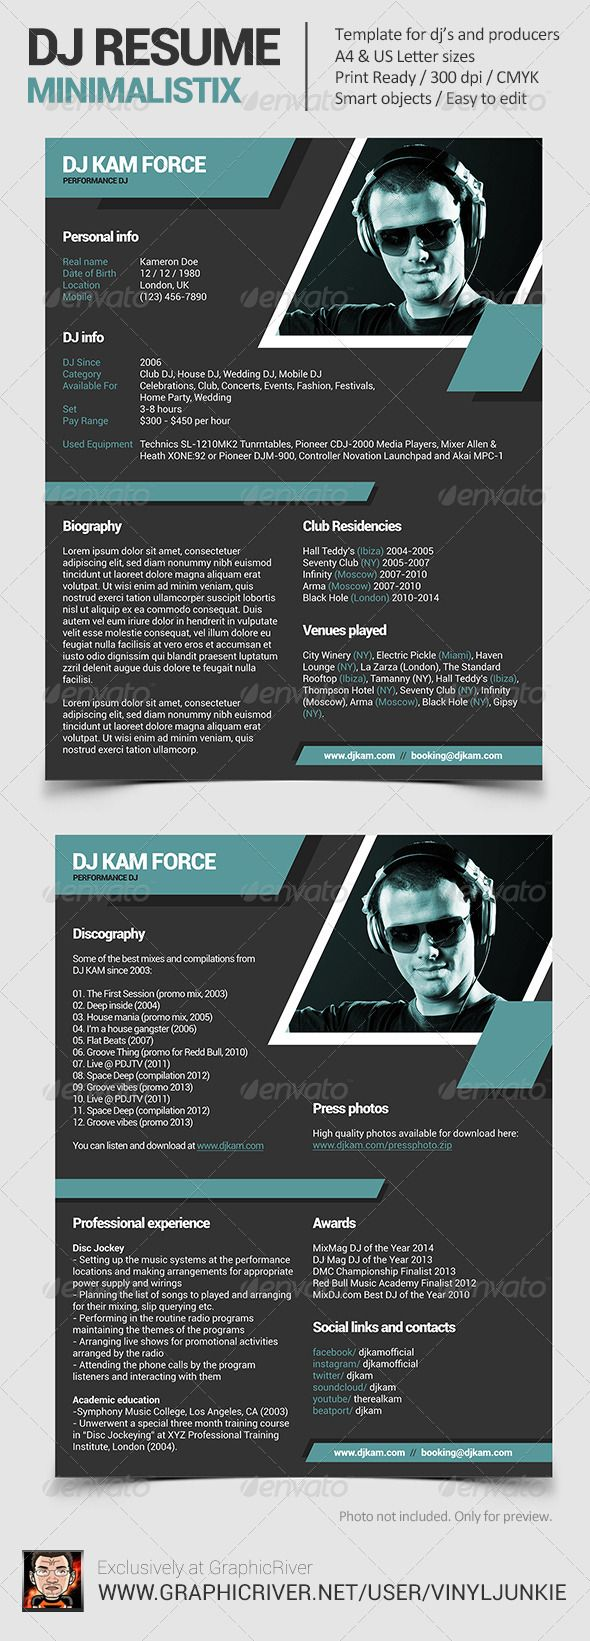 Cool 100 Free Resume Builder And Download Big 16th Birthday Invitation Templates Rectangular 18 Year Old Resumes 1st Job Resume Samples Young 2 Circle Template White2 Column Css Template 15 Best Images About DJ Press Kit And DJ Resume Templates On ..